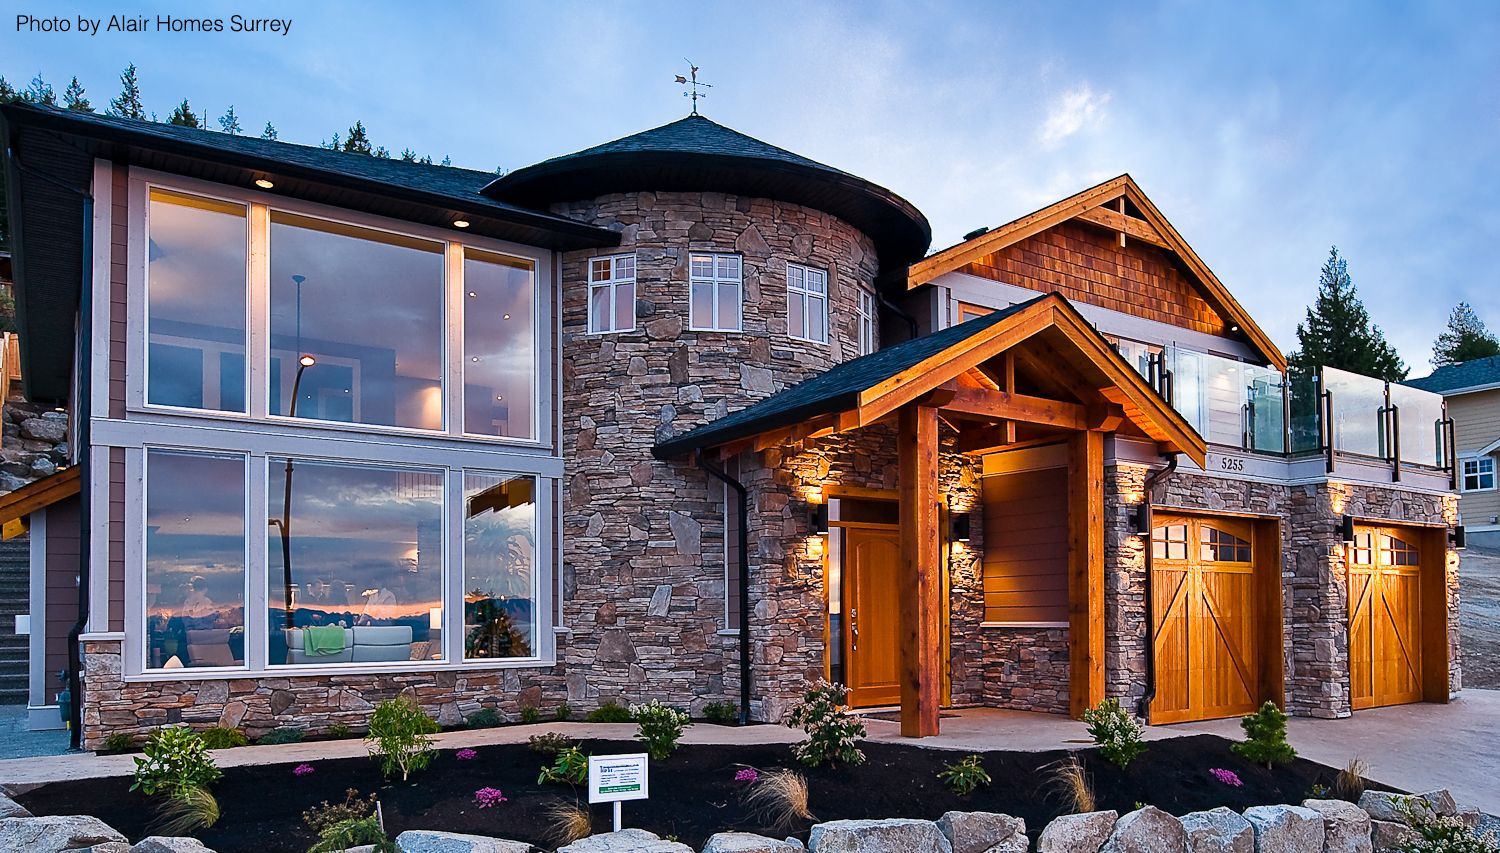 A mix of elements were used to create this home exterior